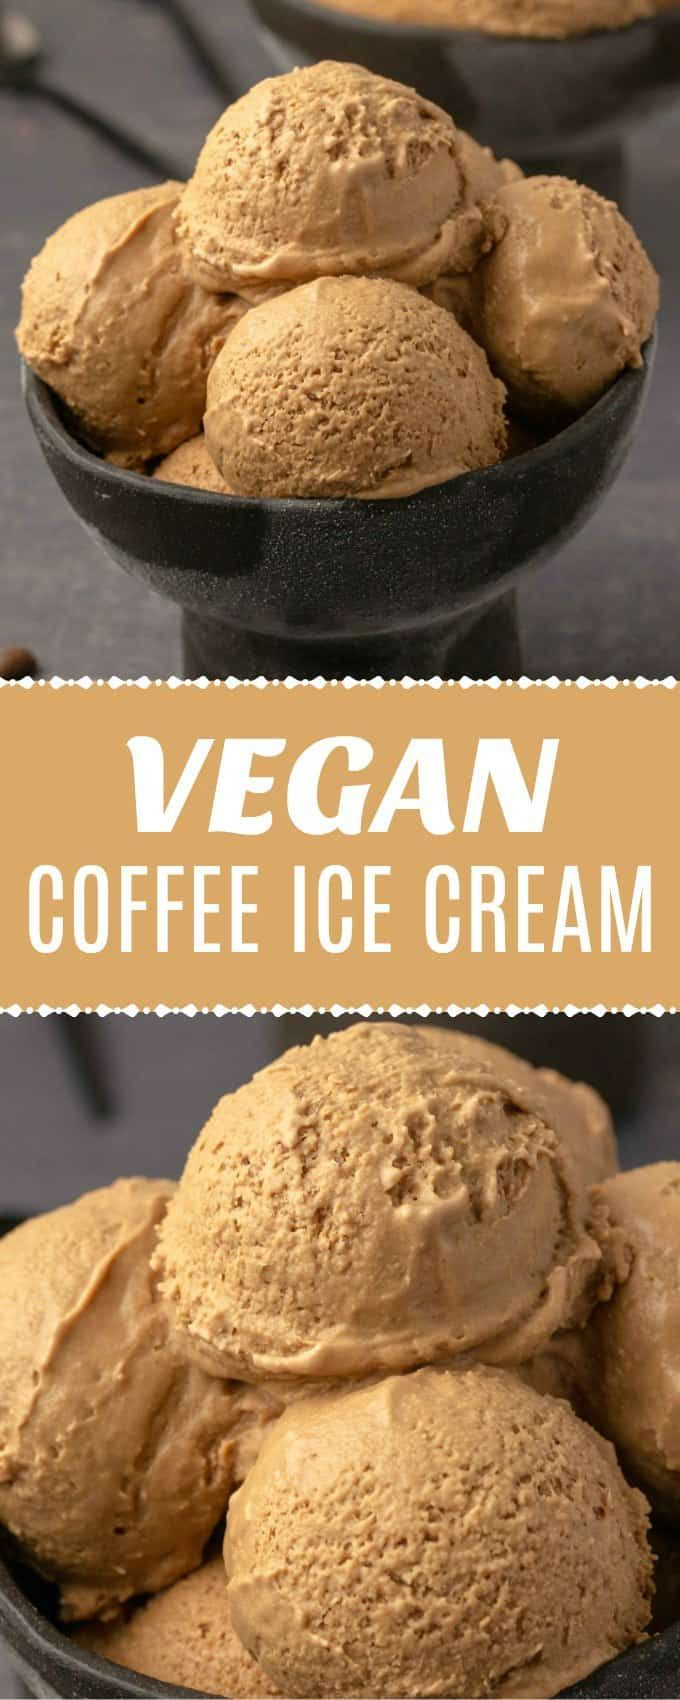 Photo of Vegan Coffee Ice Cream